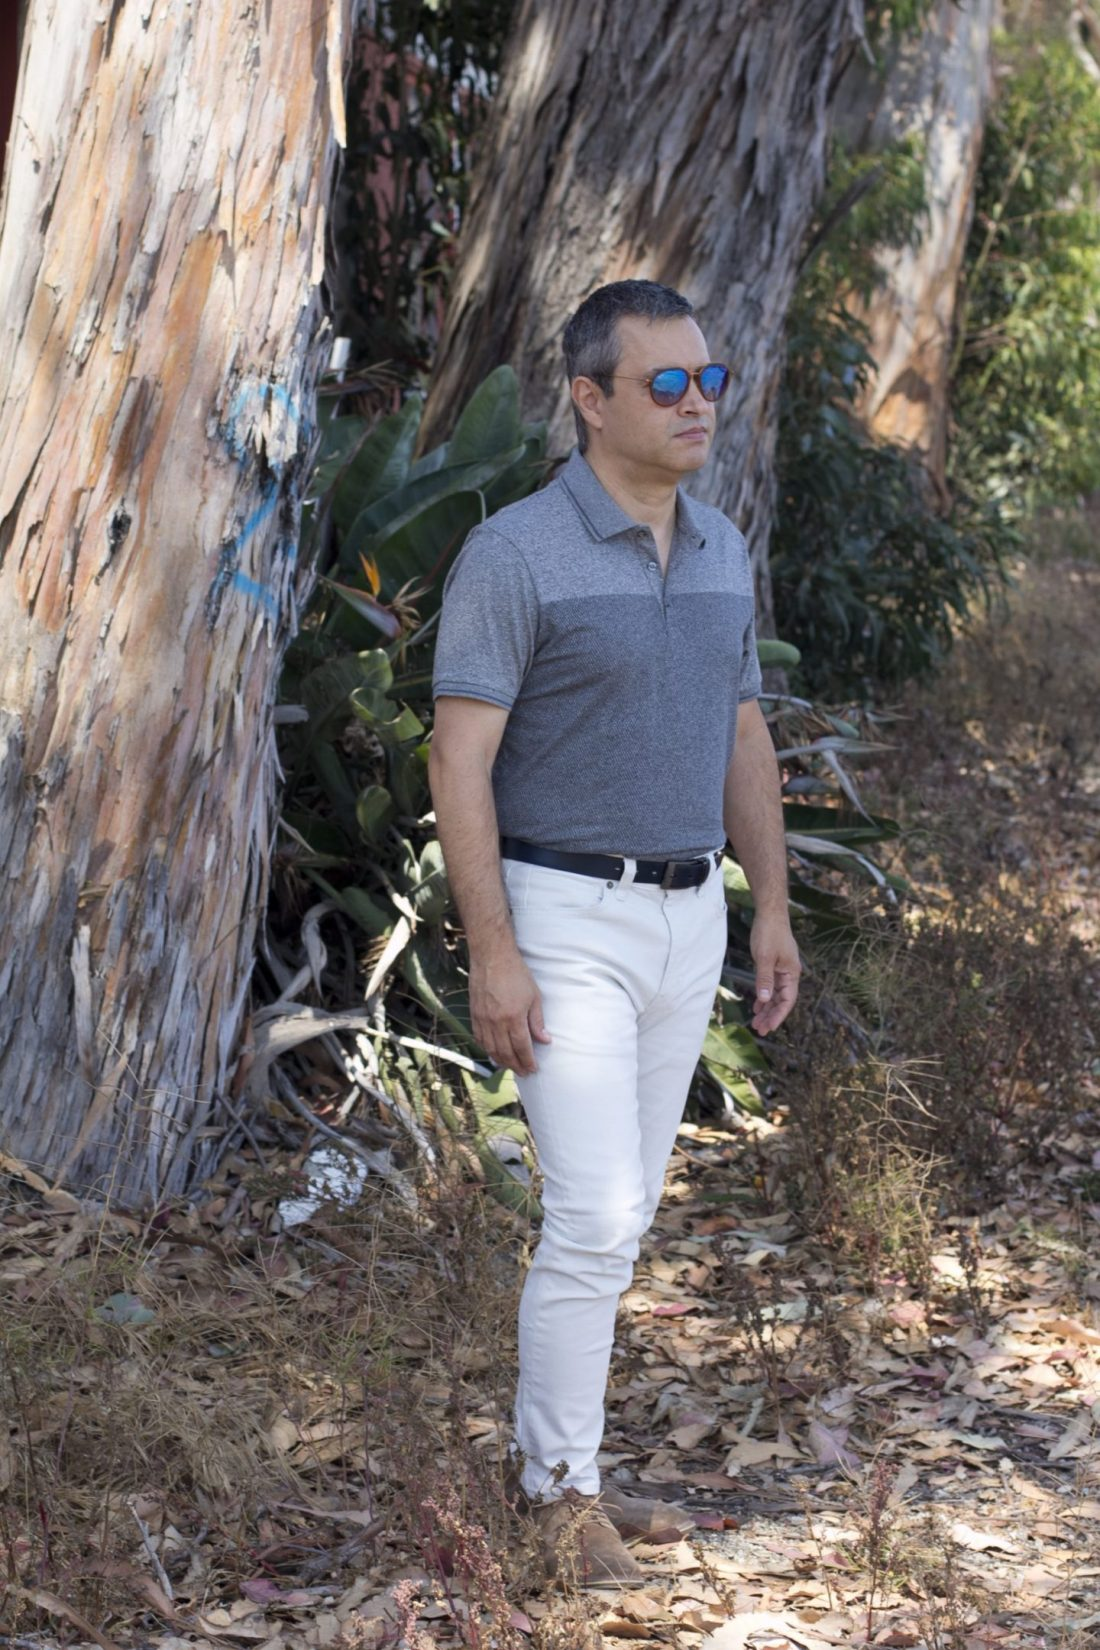 Marks & Spencer cotton blend textured polo shirt, blue leather buckle reversible belt, skinny fit stretch jeans, and suede desert lace-up shoes